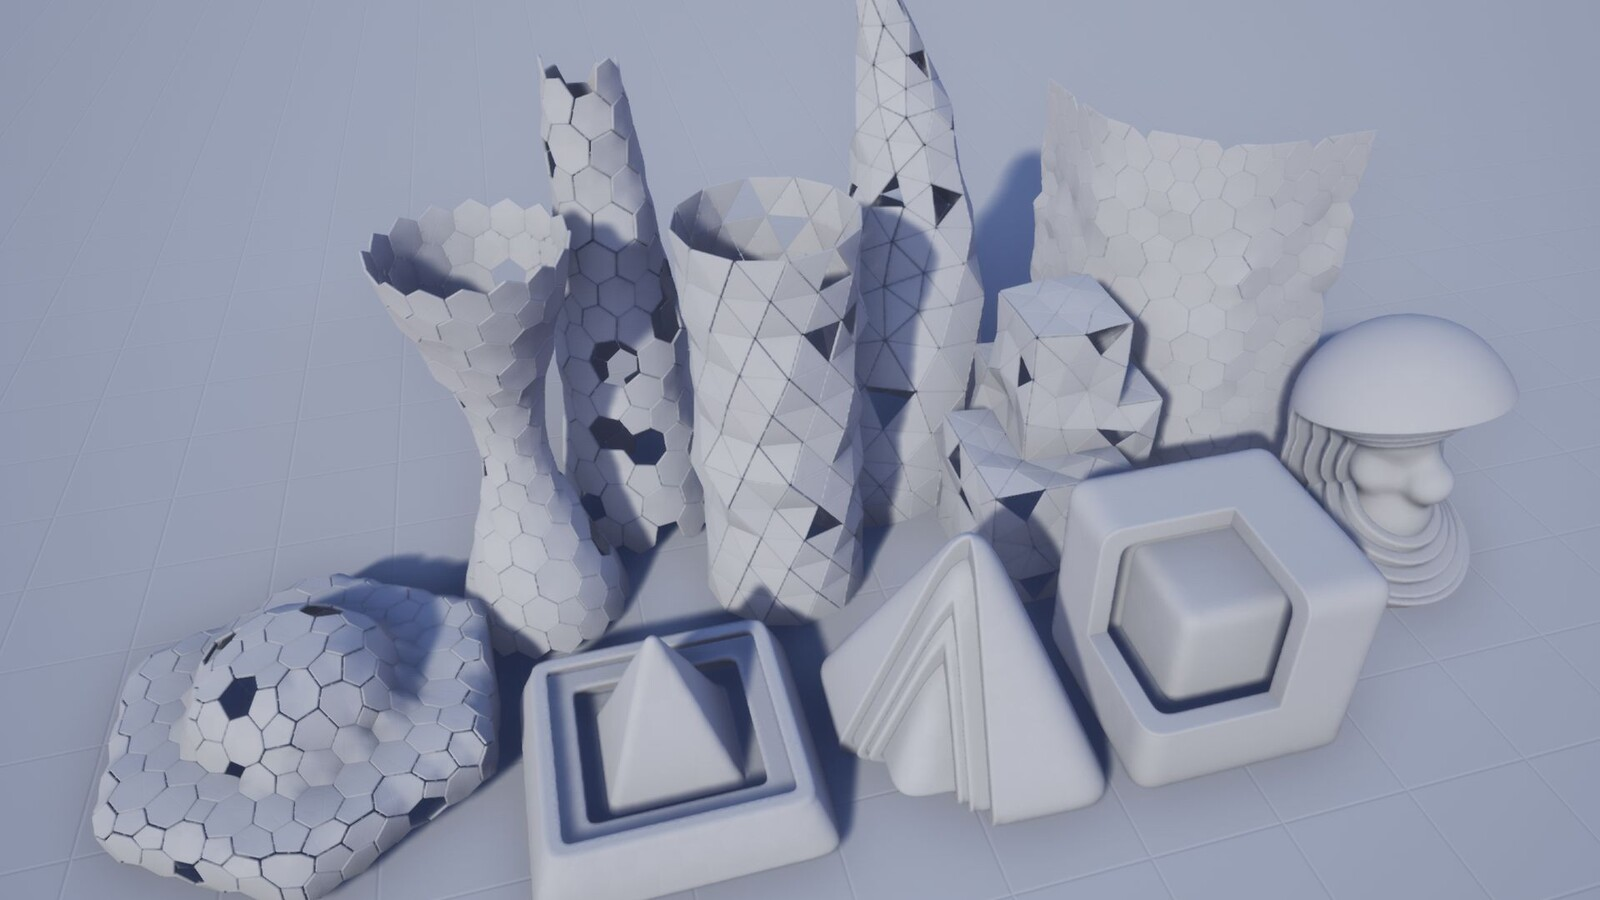 Some generated models brought into Unreal Engine.